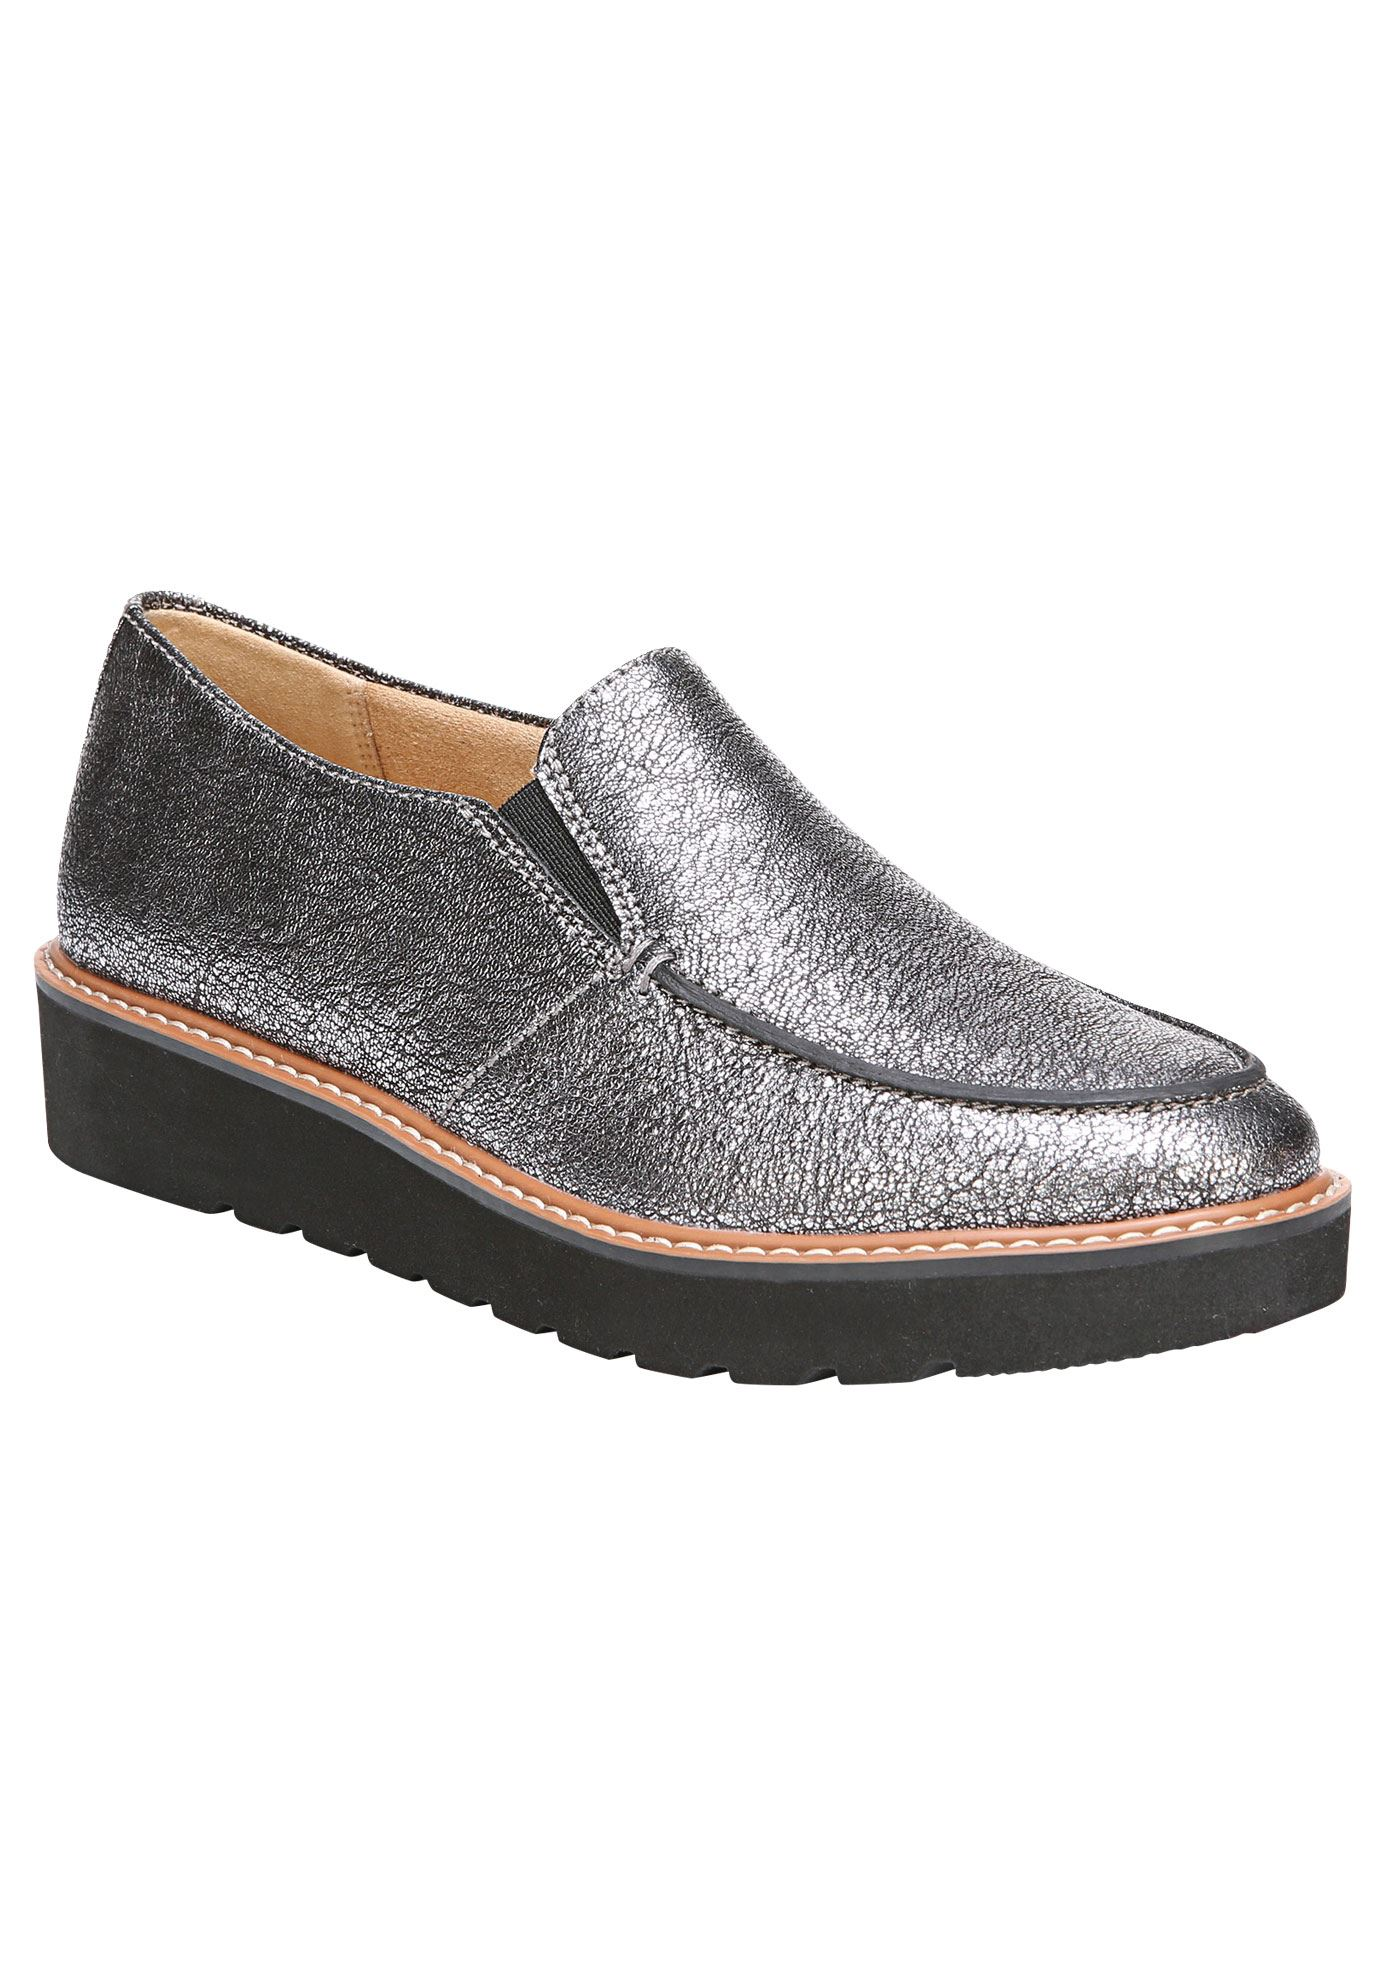 Aibileen Loafers by Naturalizer®,